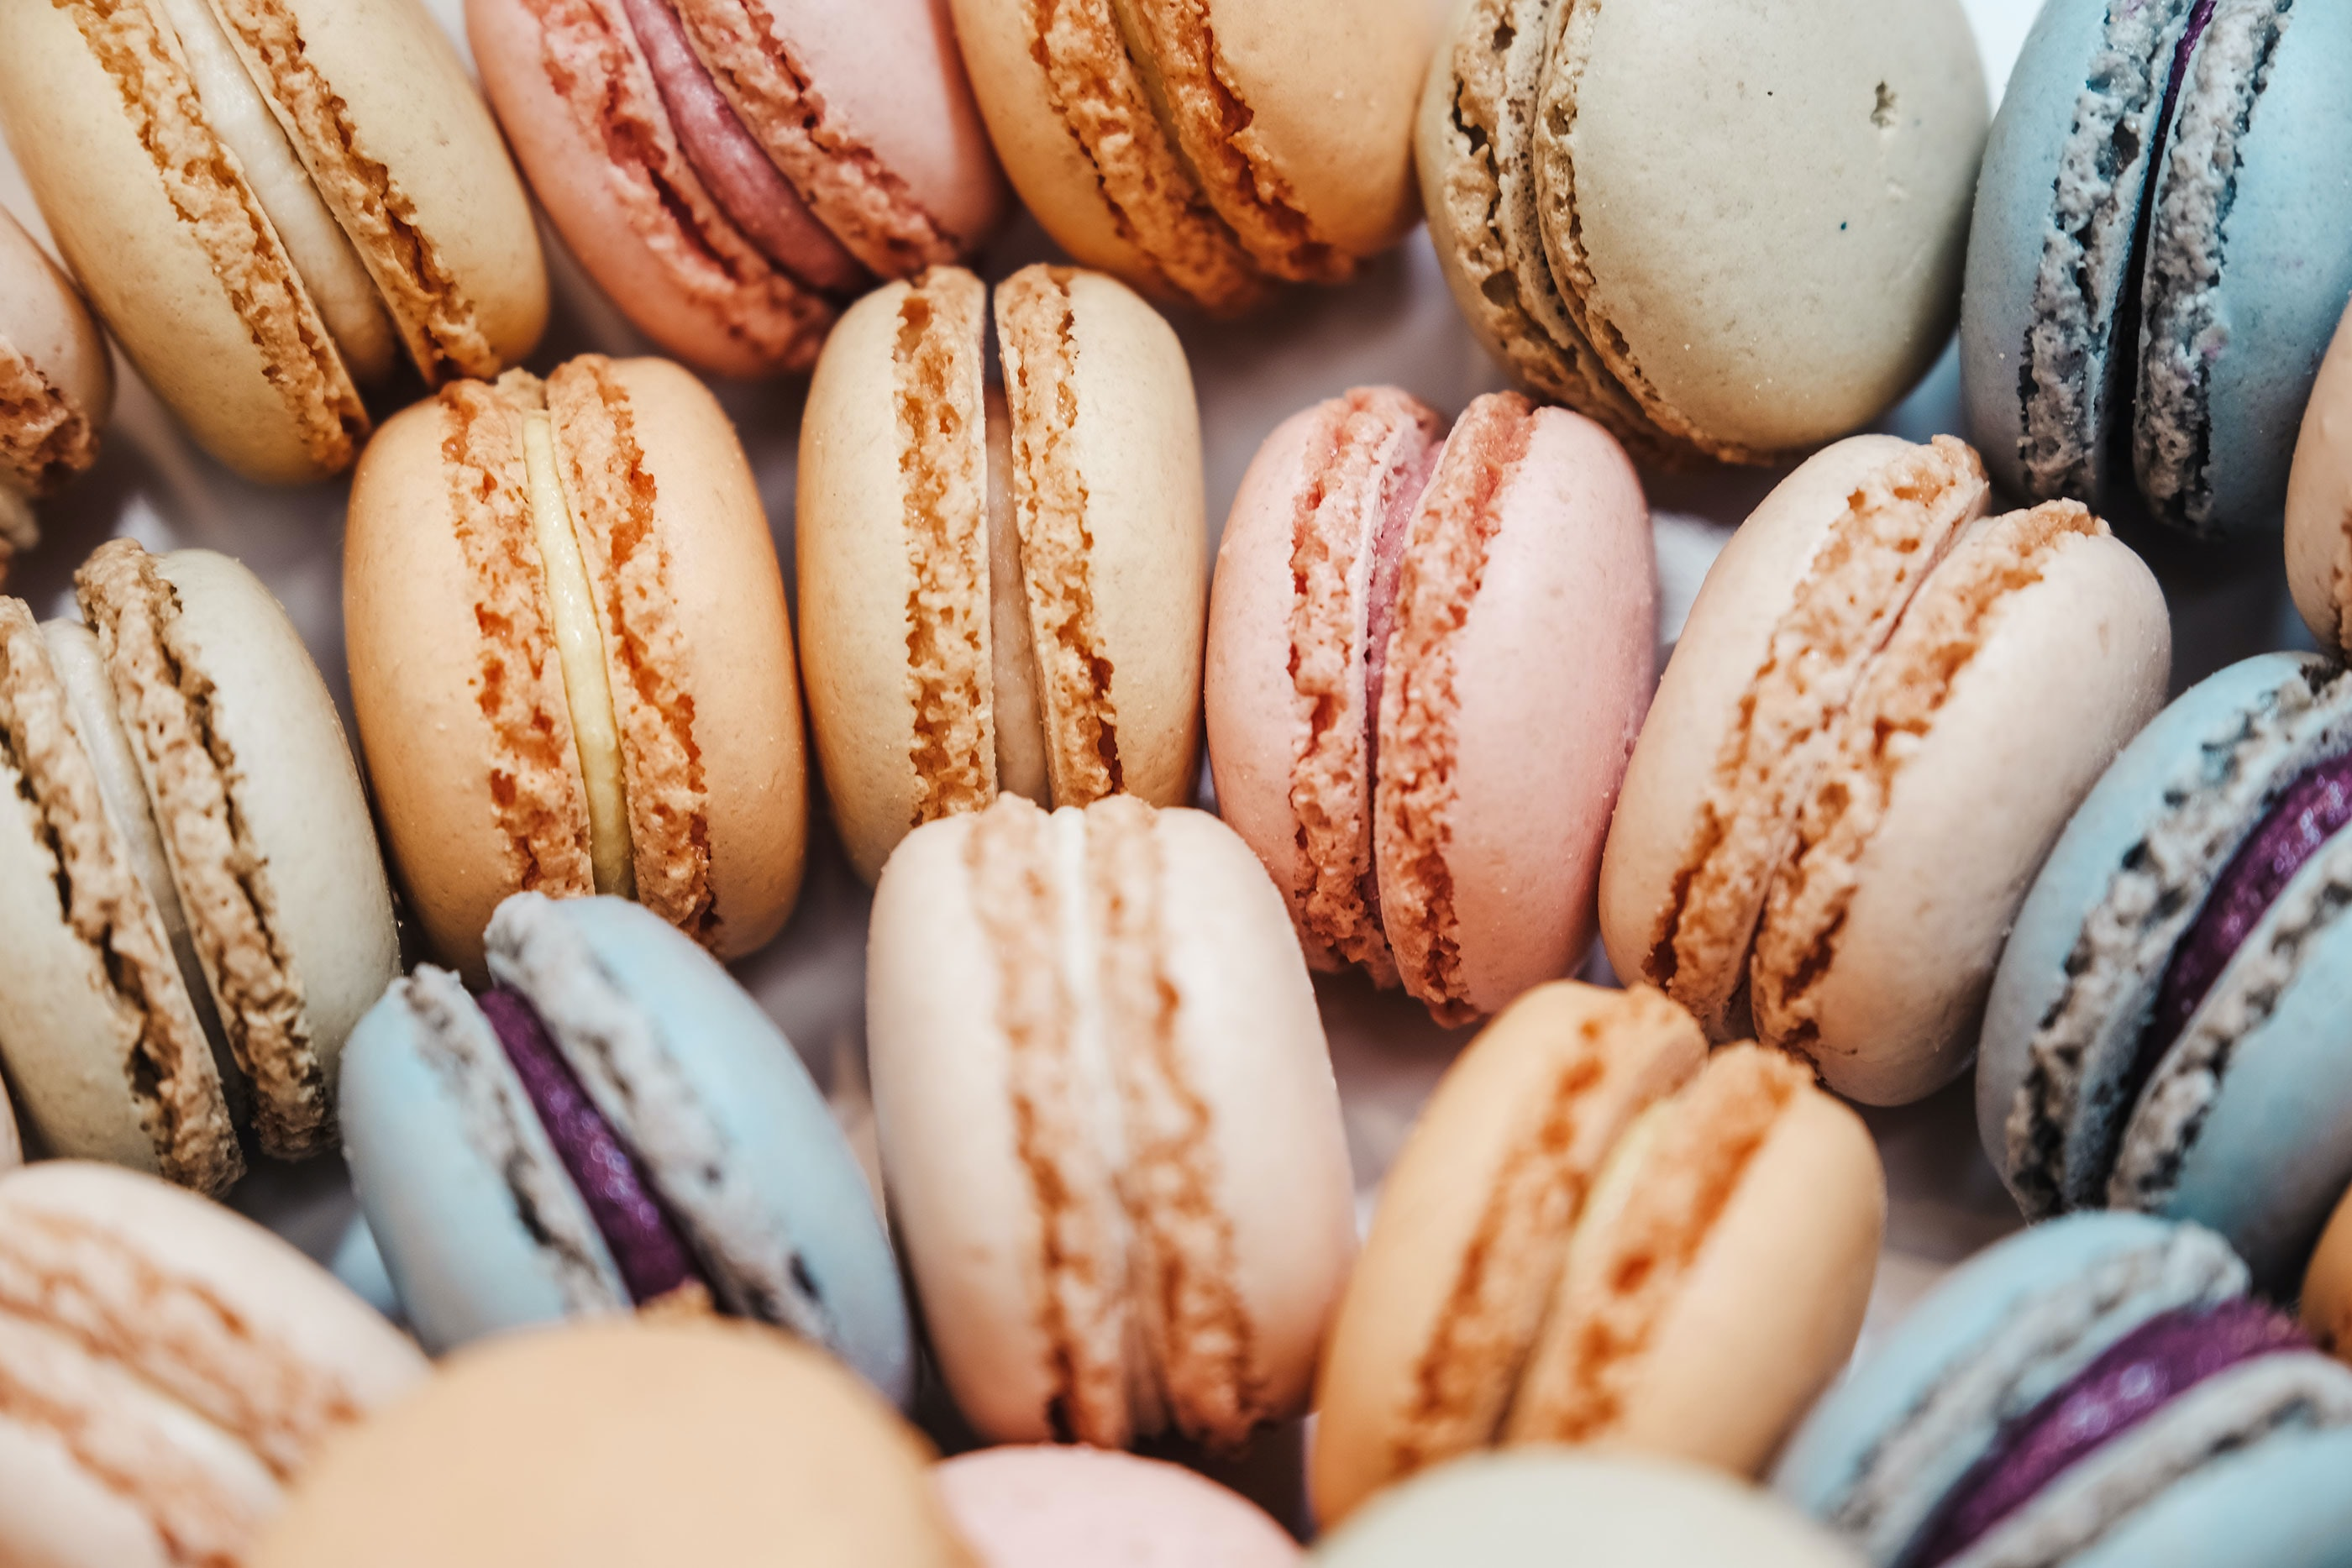 Wholesale of sugar and chocolate and pastry and bakery products in Tallinn